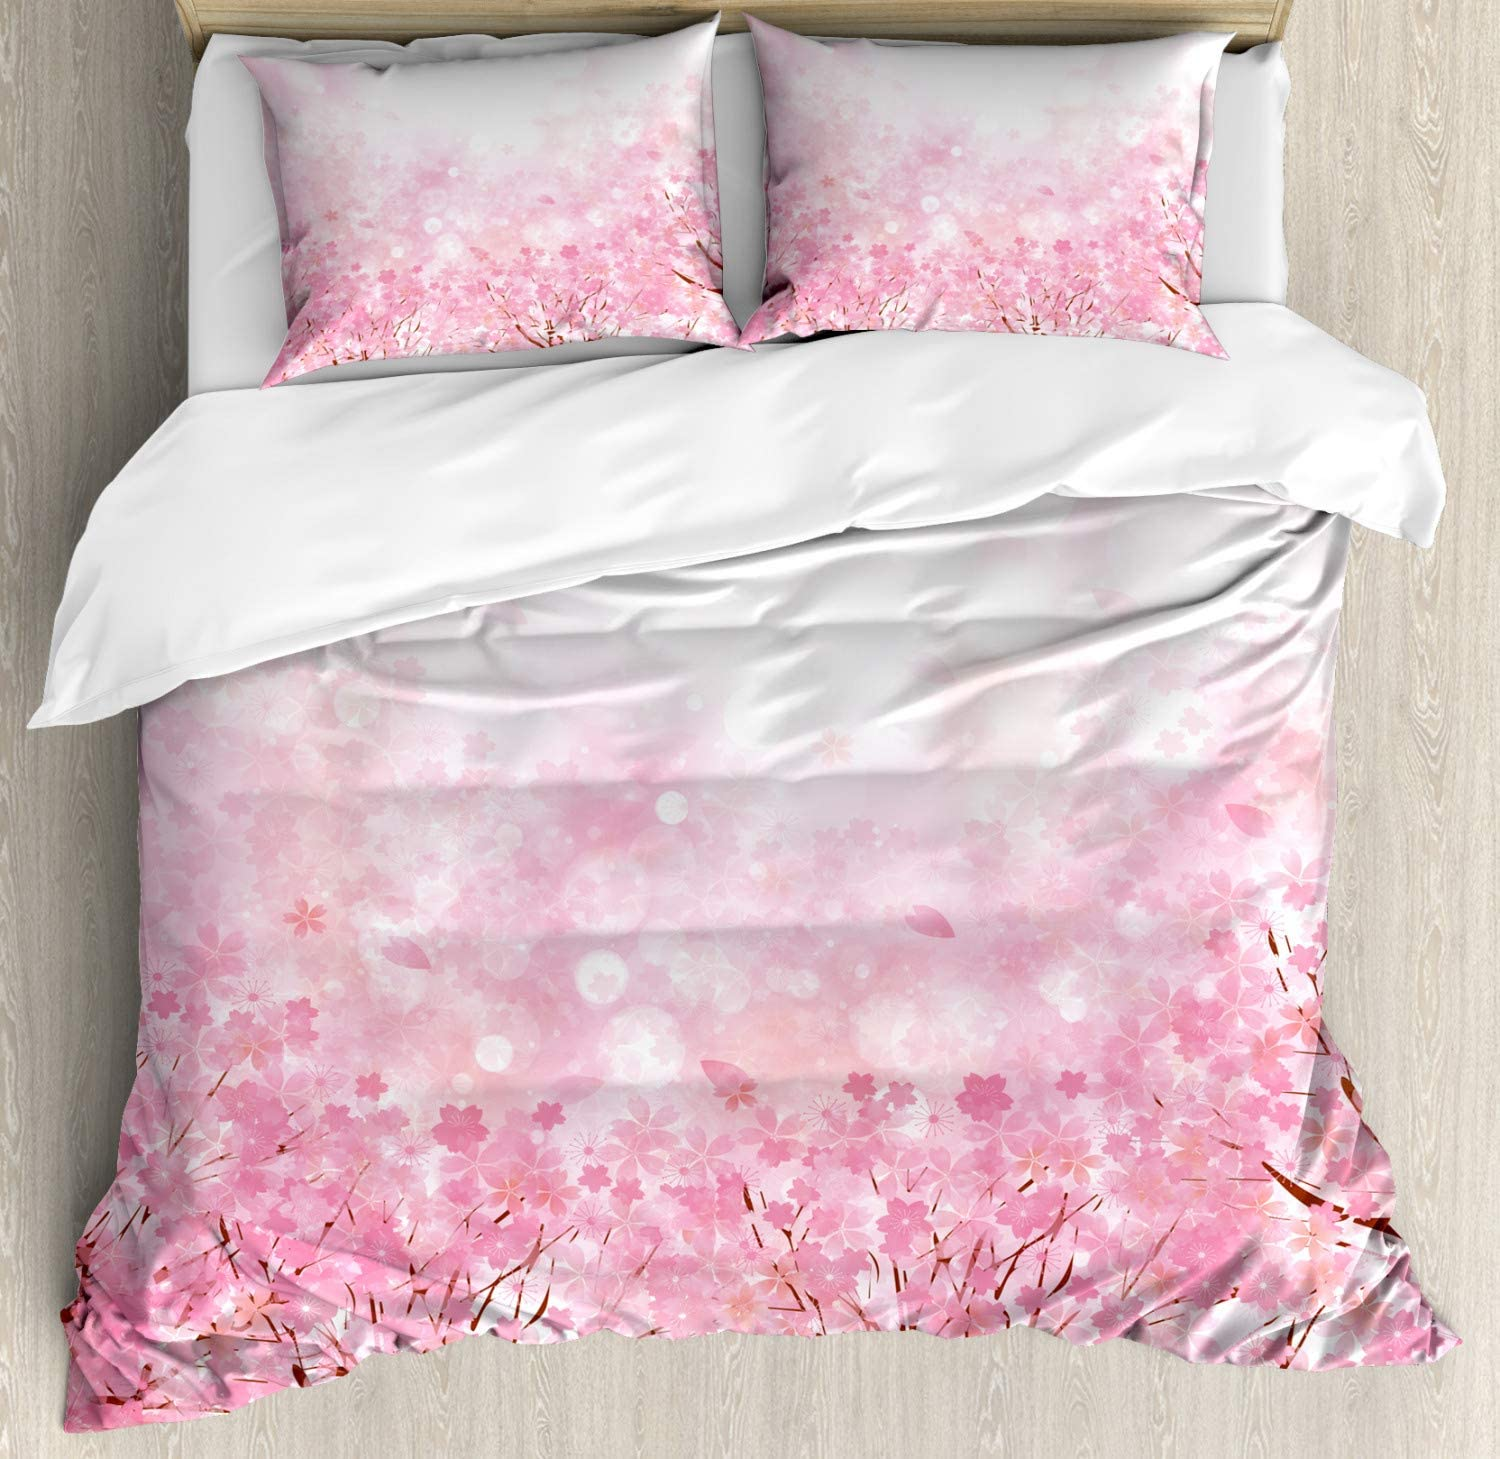 Ambesonne Pale Pink Duvet Cover Set, Japanese Cherry Blossom Sakura Tree with Romantic Influence Nature Theme, Decorative 3 Piece Bedding Set with 2 Pillow Shams, King Size, Baby Pink